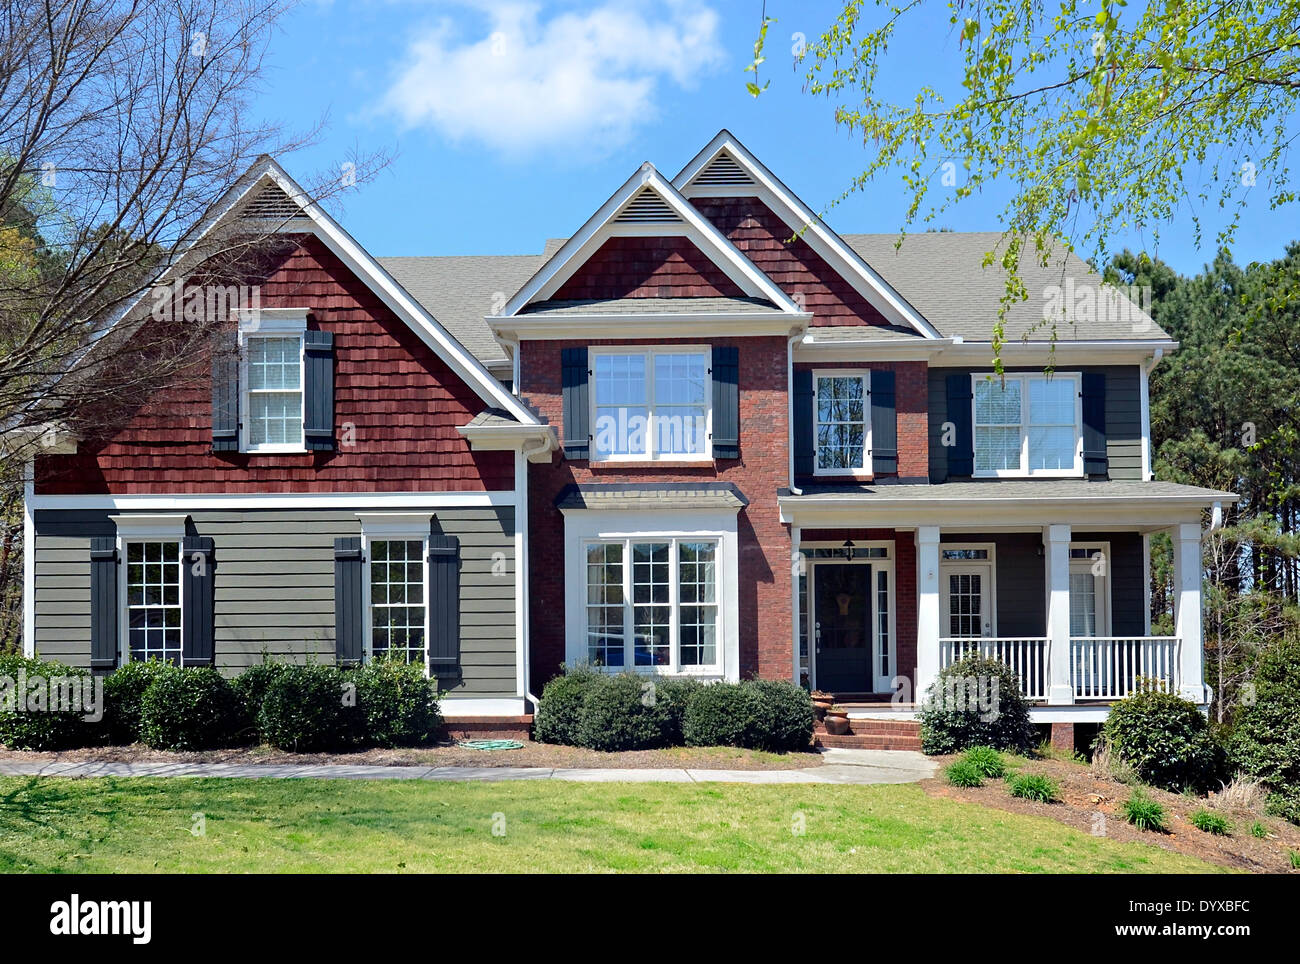 The front of a two story house with brick and siding, in the early spring. - Stock Image